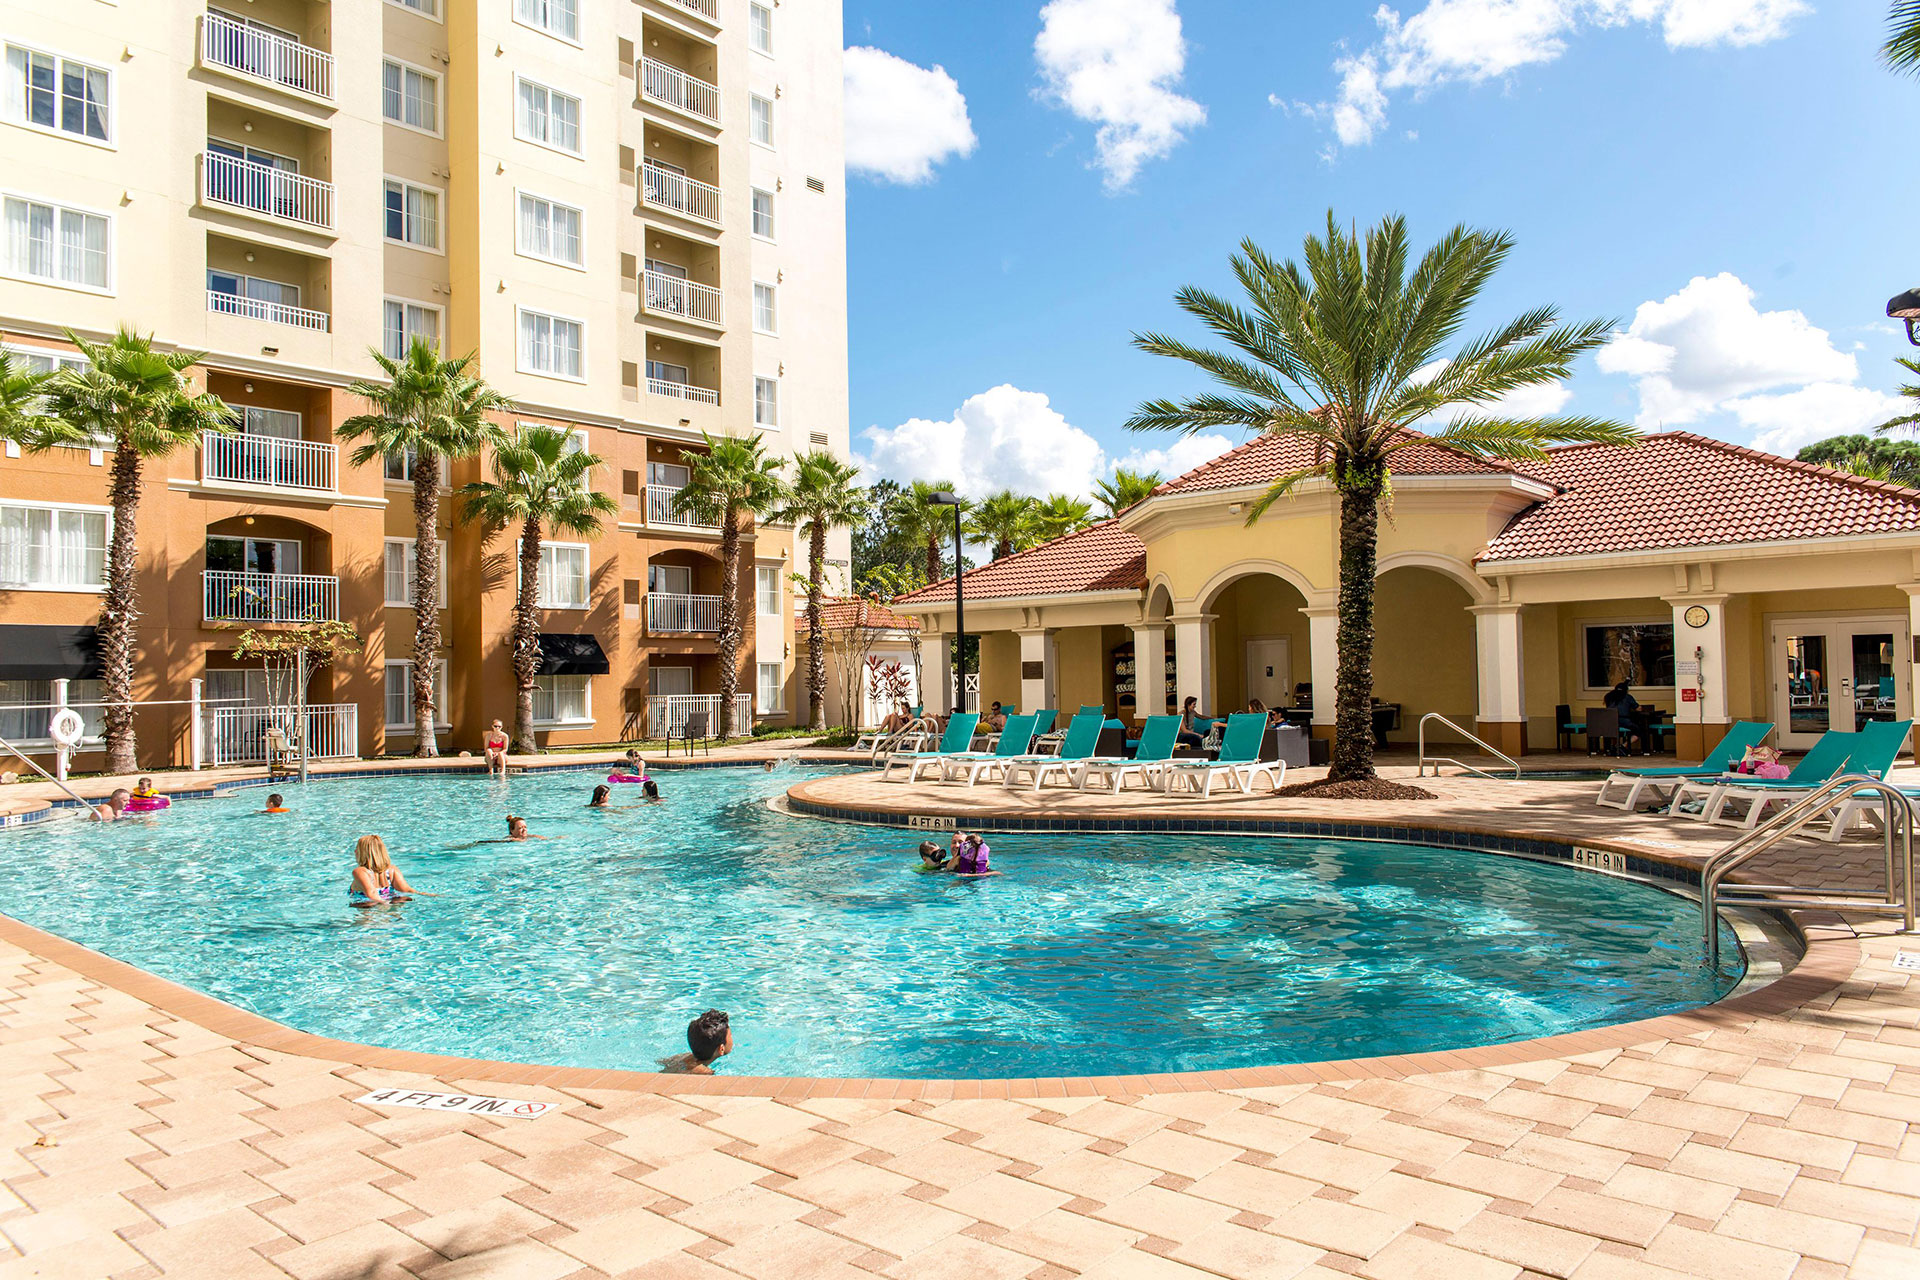 14 Kid-Friendly Orlando Resorts Near Disney, Universal